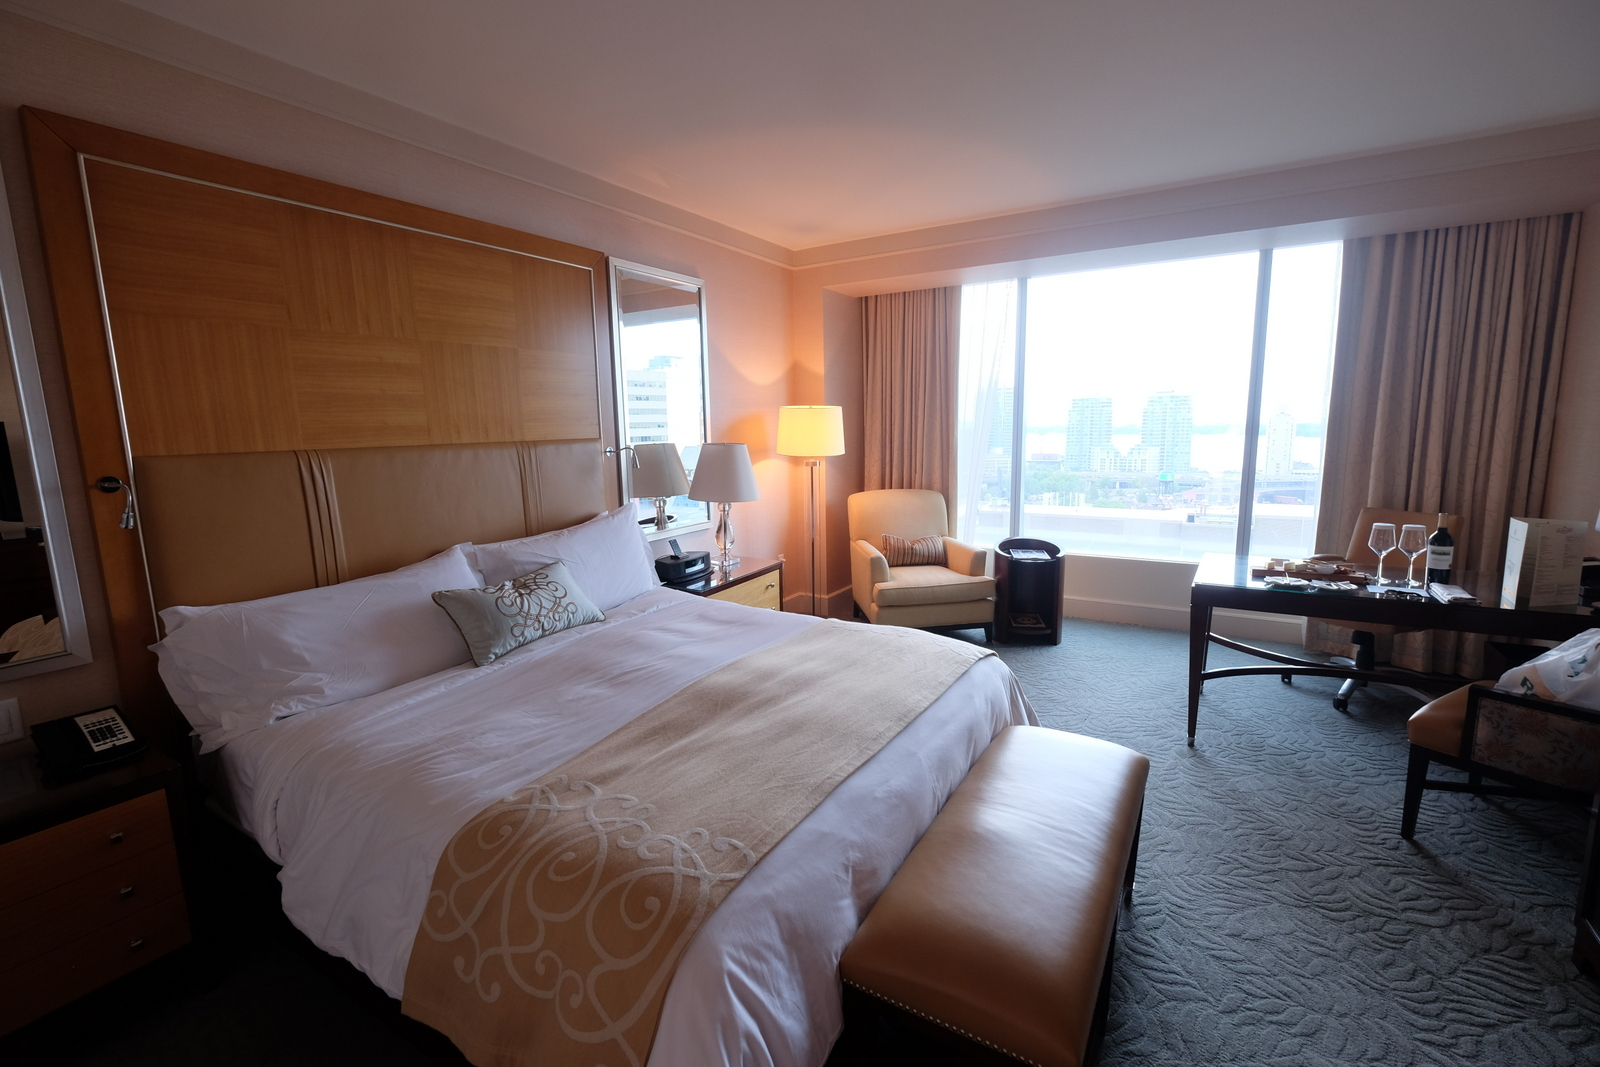 Rooms at the Ritz-Carlton Toronto are sleek and stylish, but still warm and inviting.